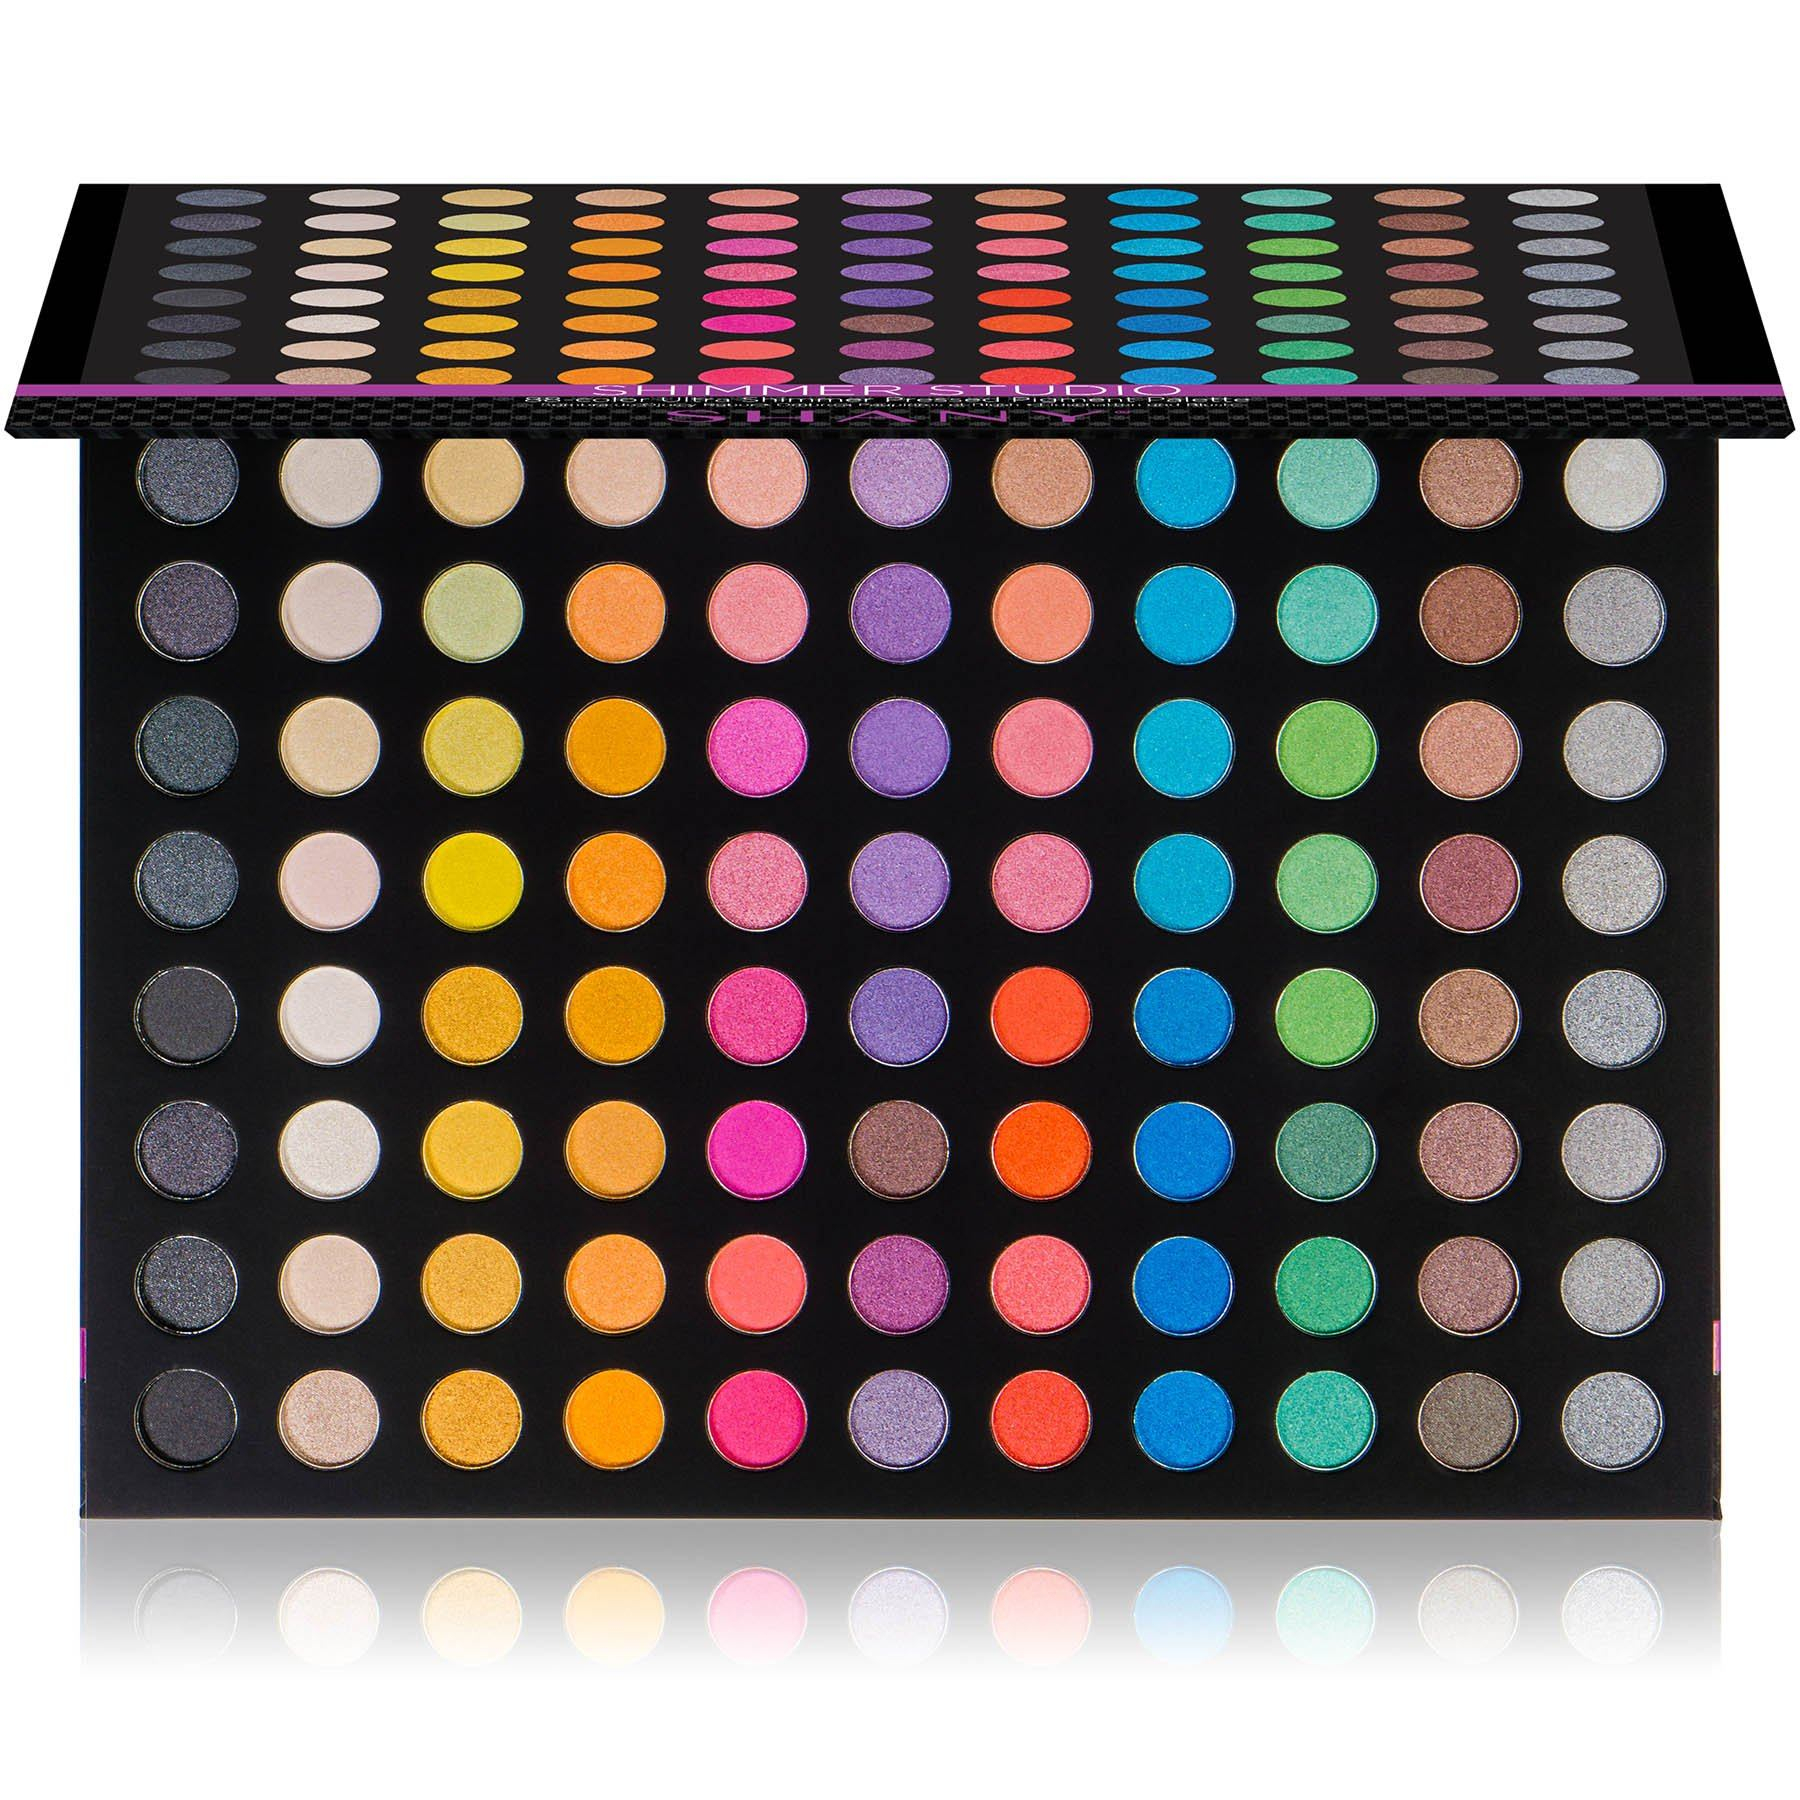 Image of Eye shadow Palette, Ultra Shimmer, Studio Colors for Smoky Eyes